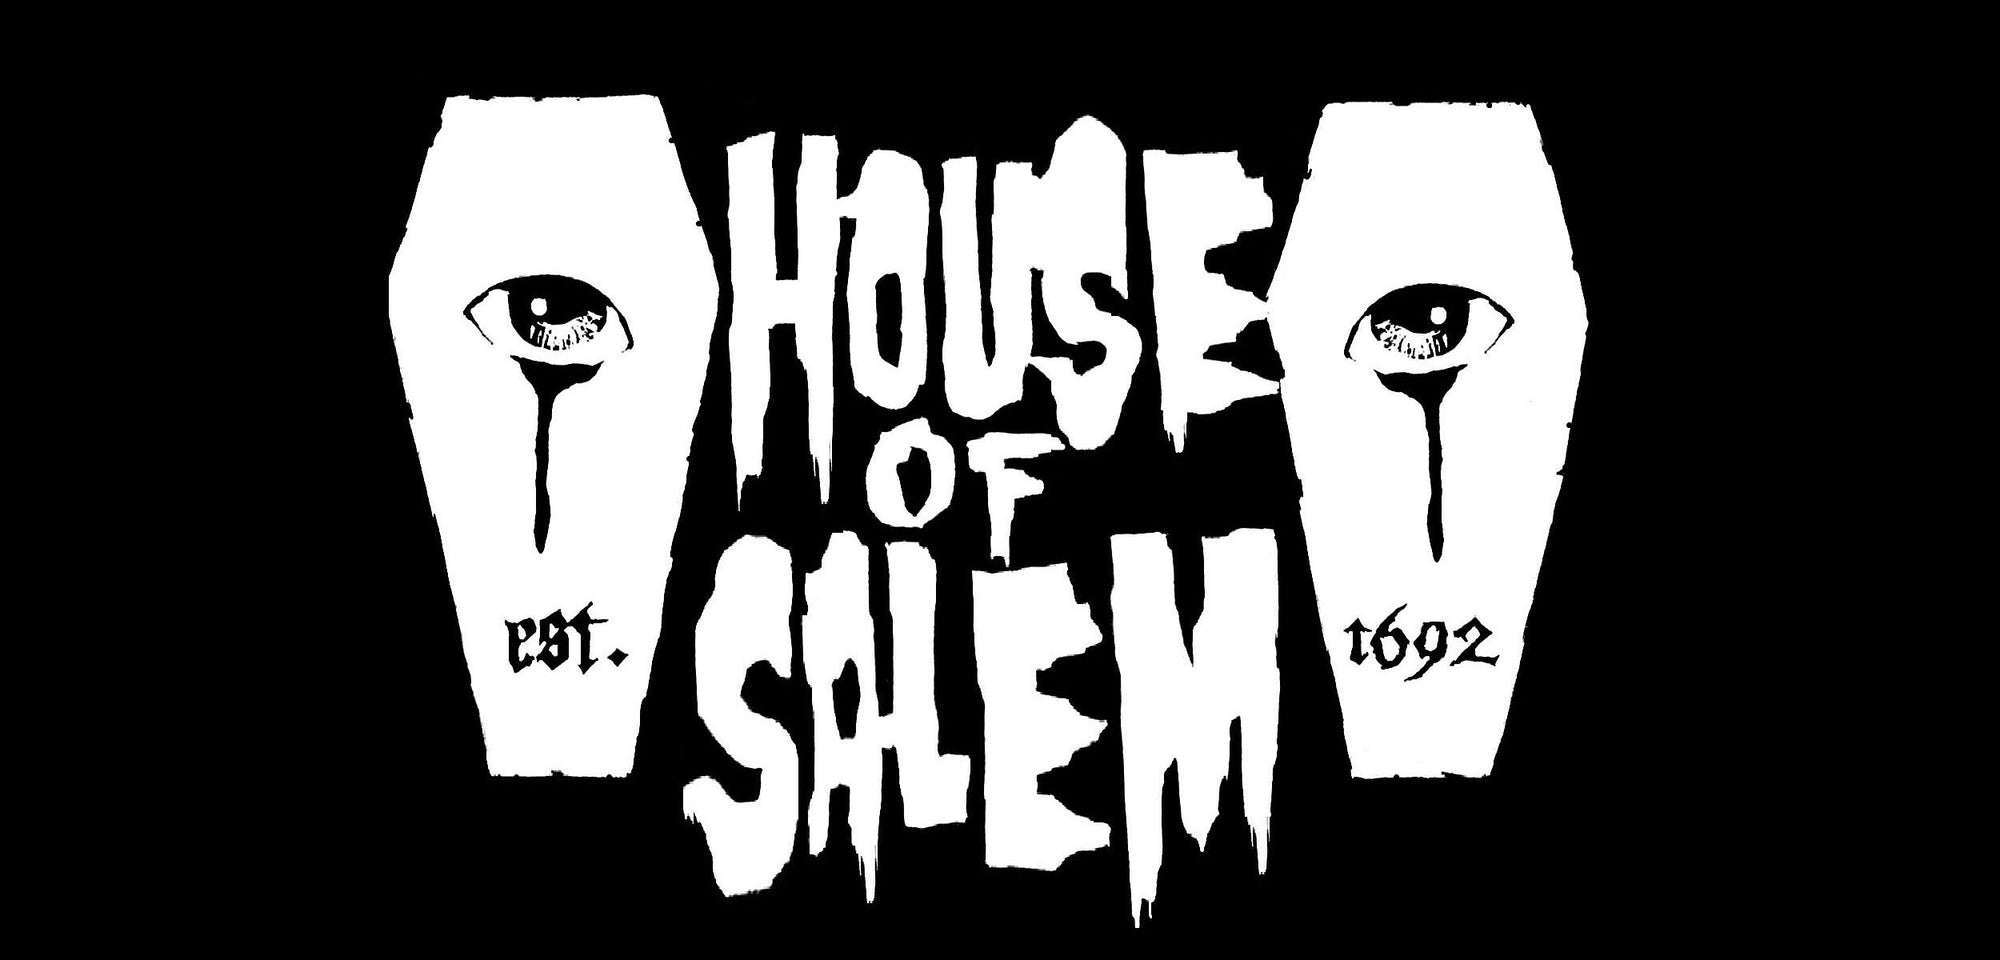 house of salem logo tshirt company coffins eyes 1692